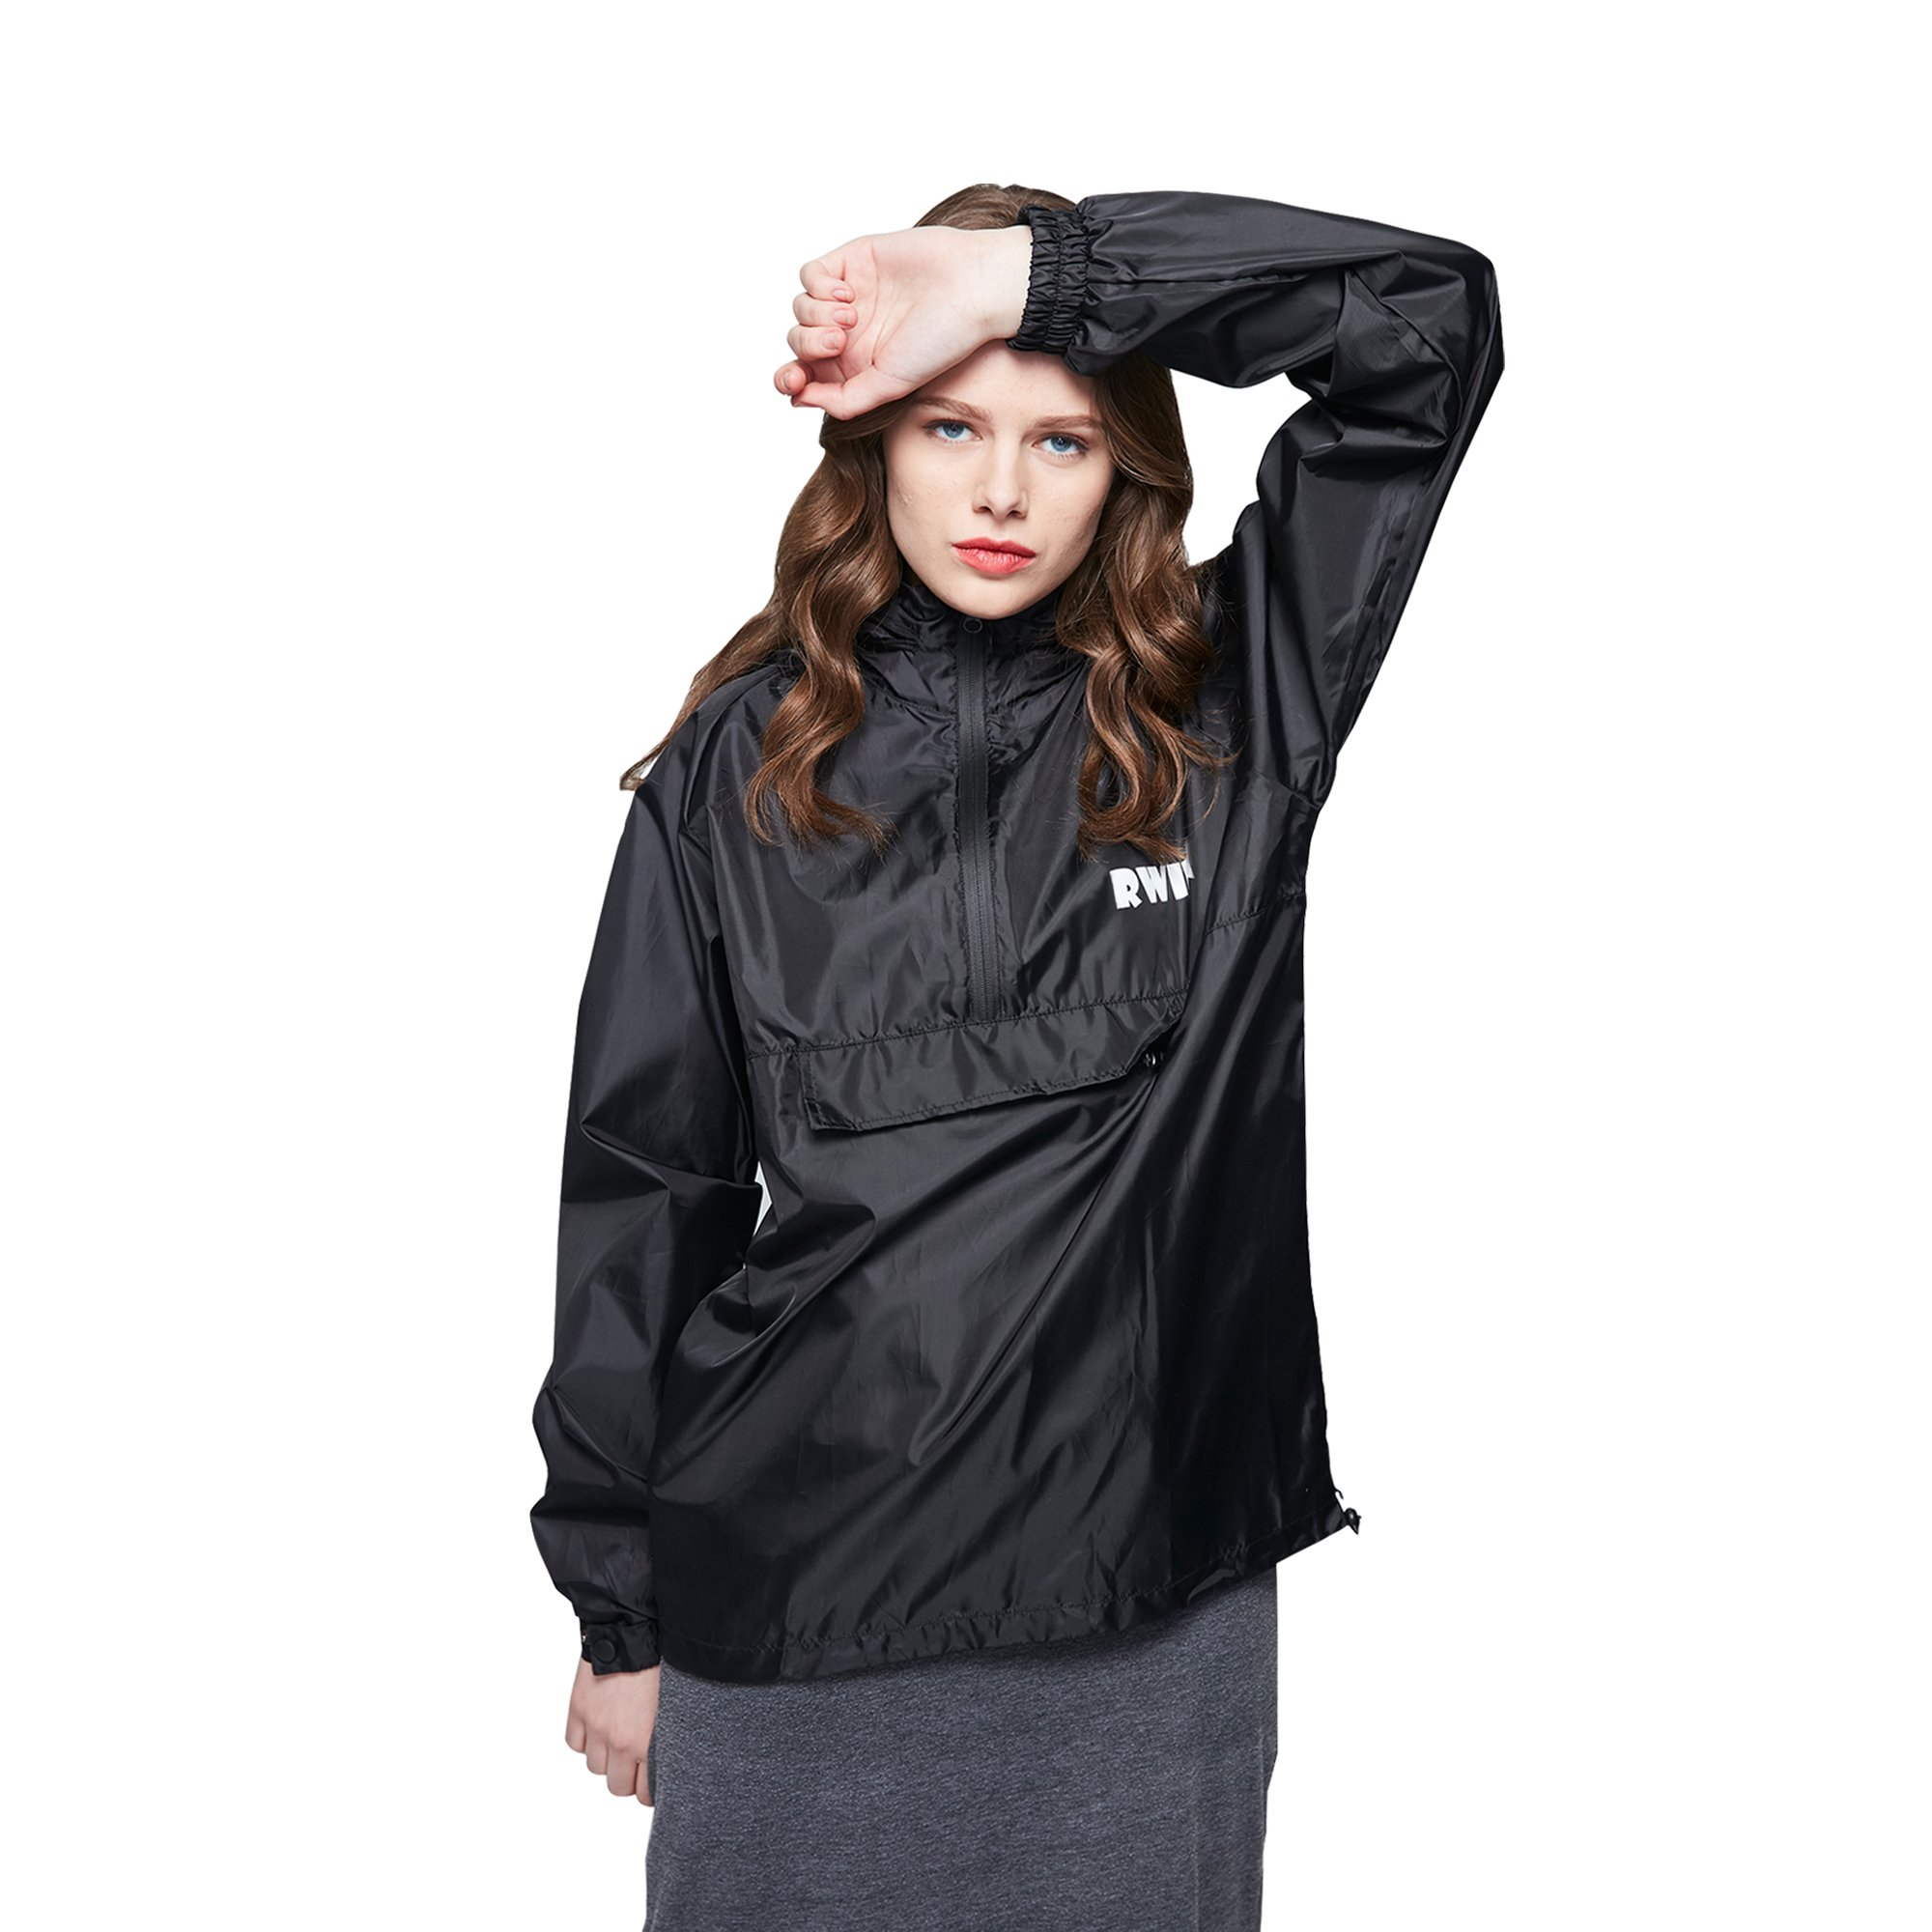 ZDHGLOBAL Men's Women's Lightweight Packable Portable Rain Jacket with Invisiable Hood and Front Pocket for Outdoor Activity L Black by ZDHGLOBAL